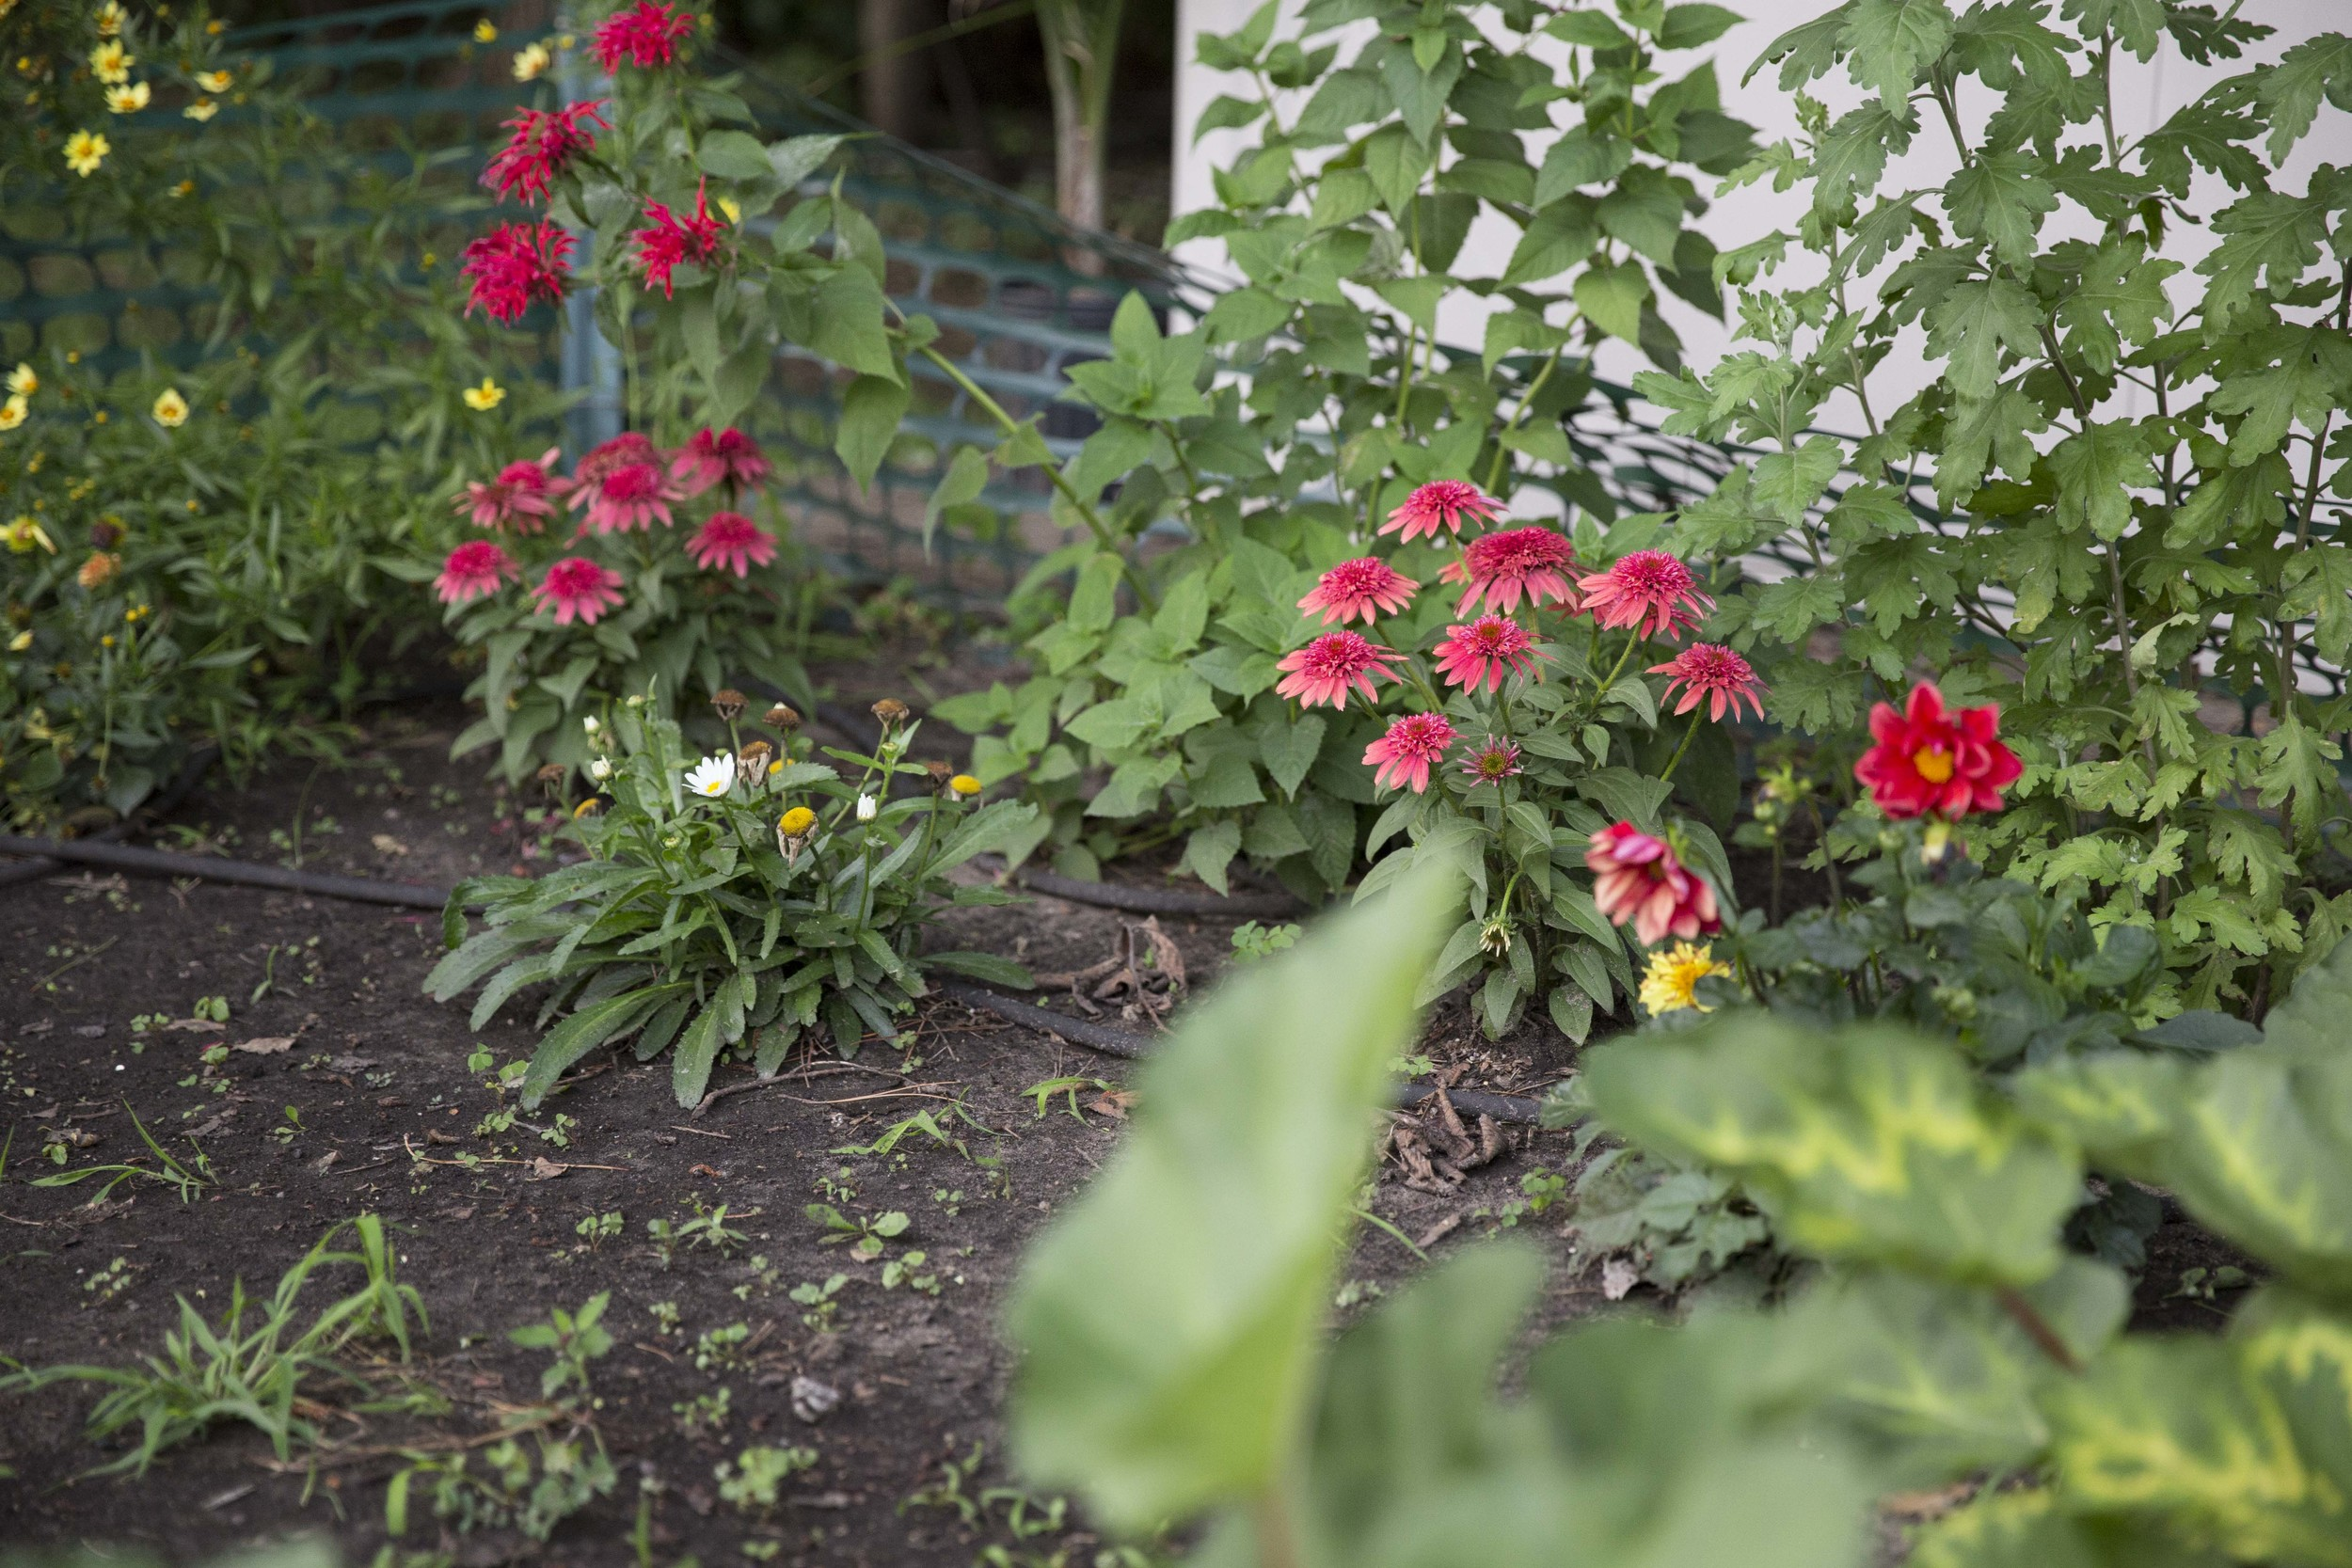 from left to right, yellow coreopsis, red beebalm, double scoop cranberry echinacea, daisies, more double scoop cranberry echinacea, dahlias, spider mum without blooms